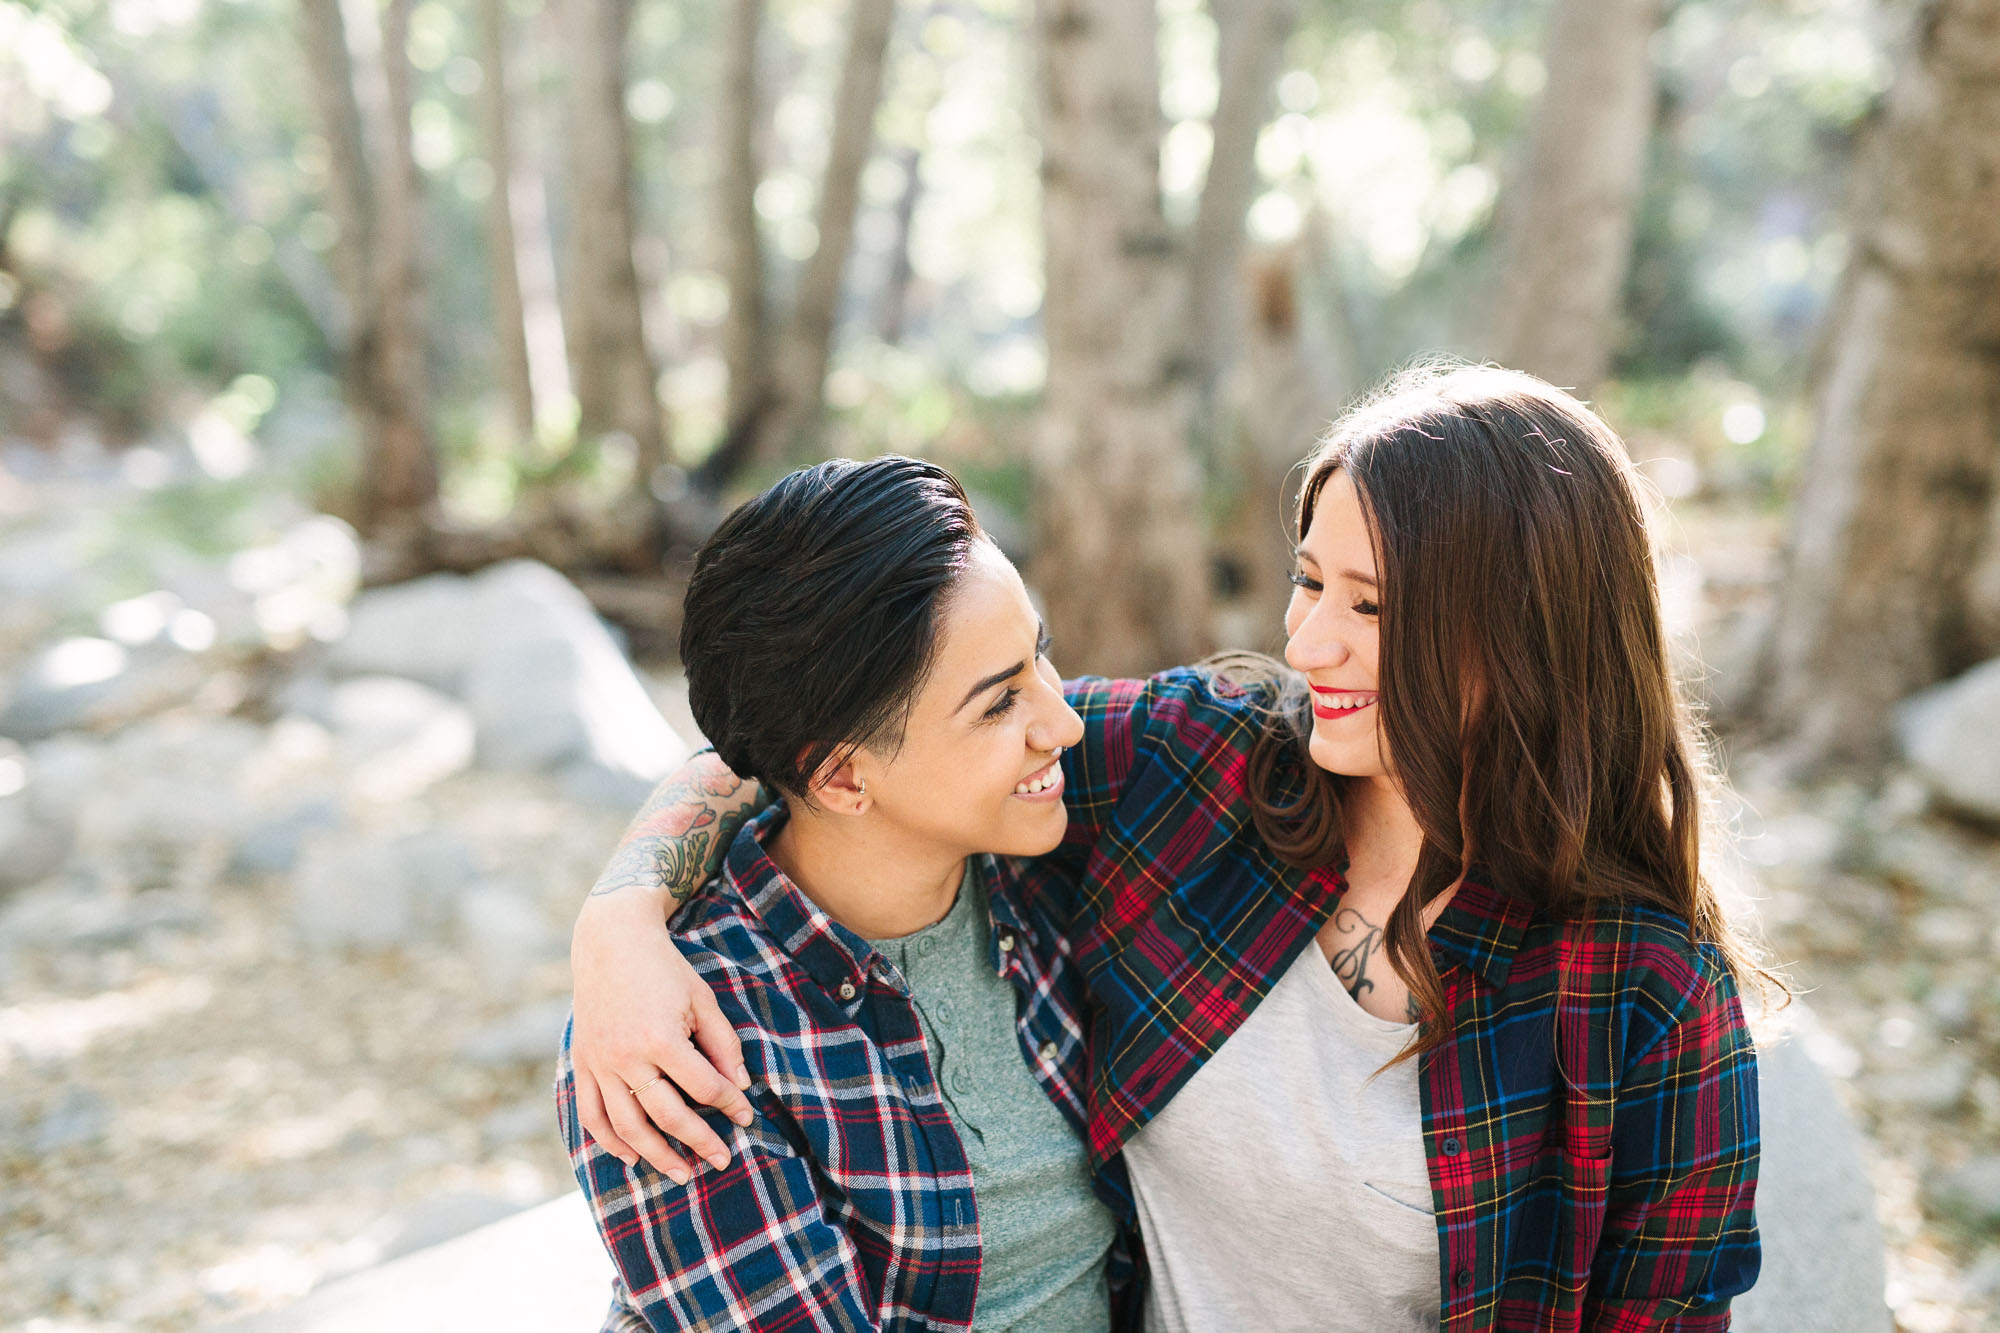 www-marycostaphotography-com-angeles-national-forest-engagement-0012